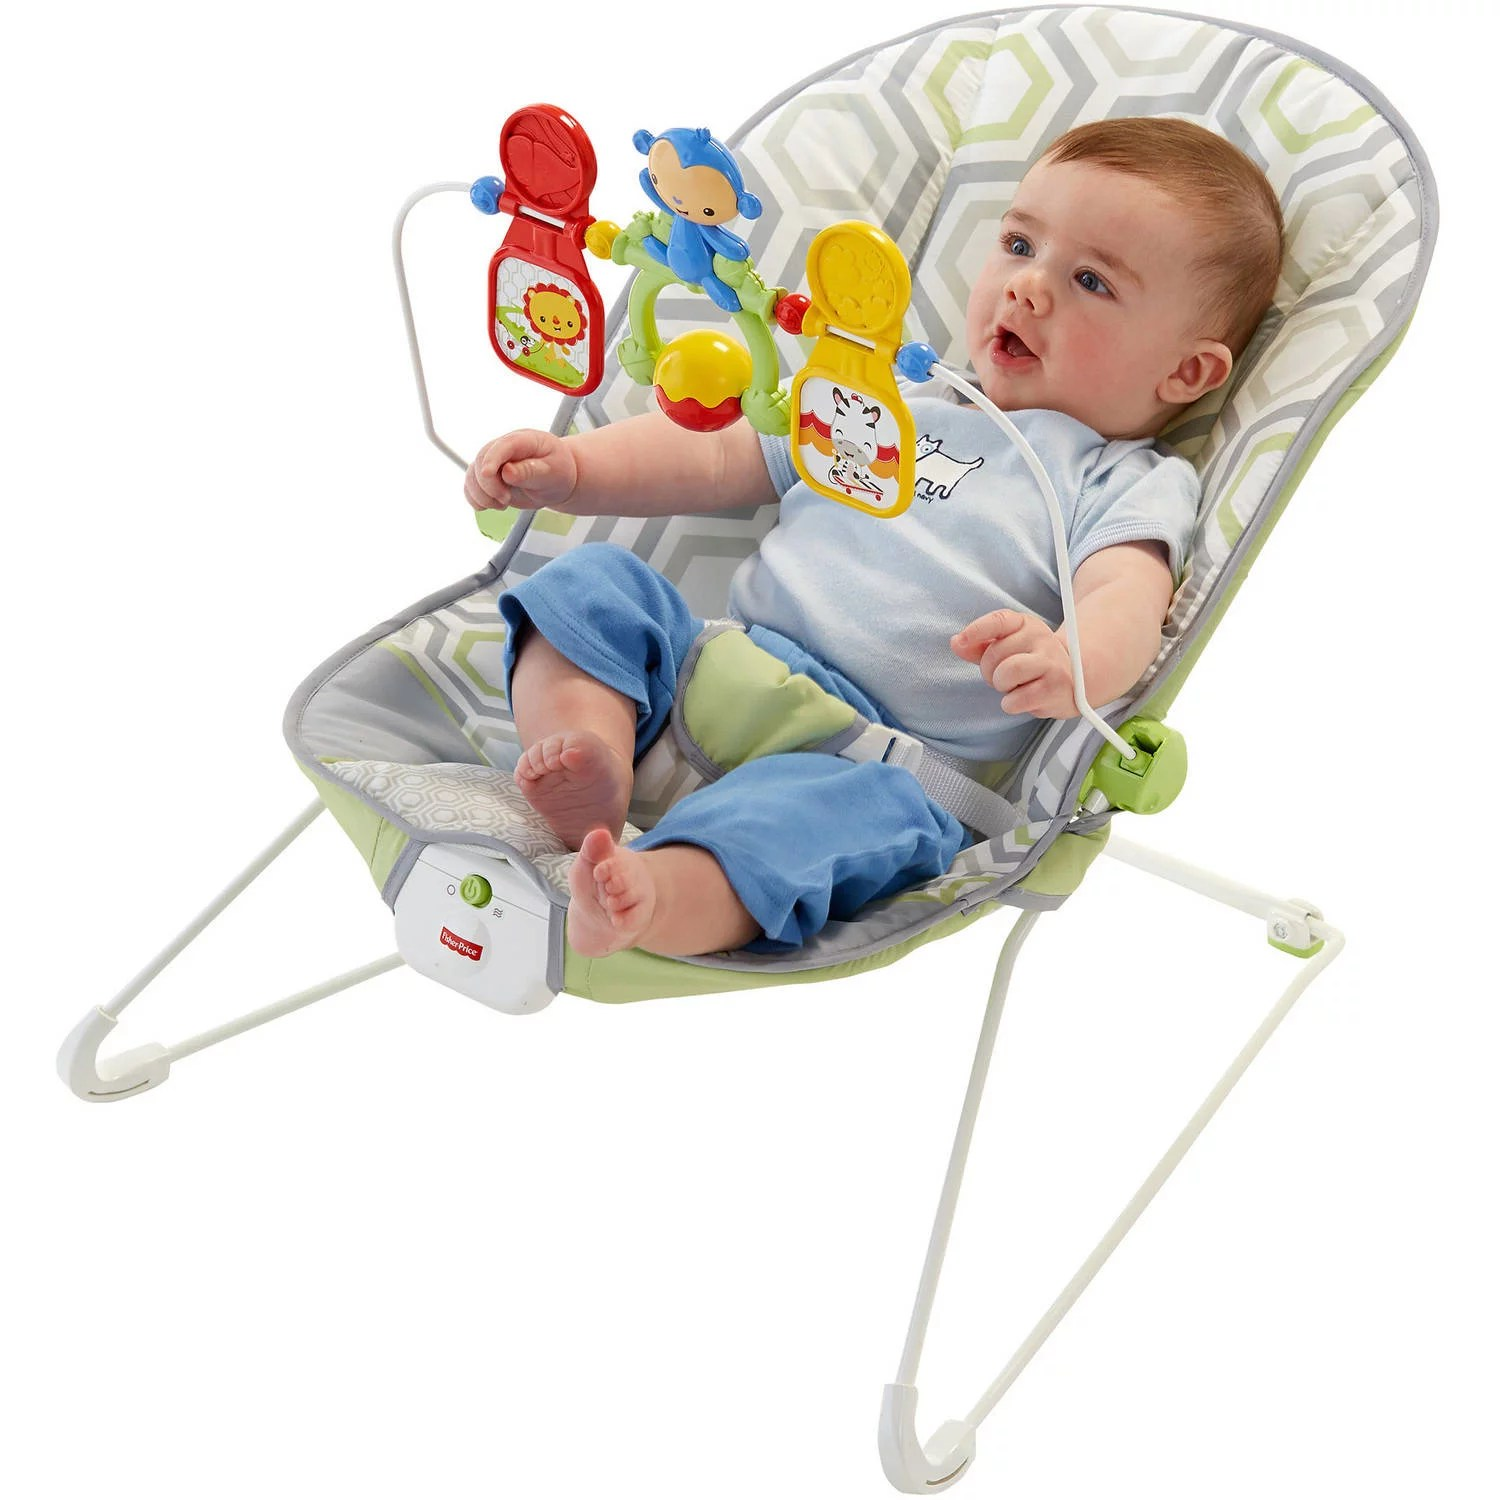 infant bouncy chair fishing chairs argos fisher price baby s bouncer with removable toy bar geo meadow walmart com